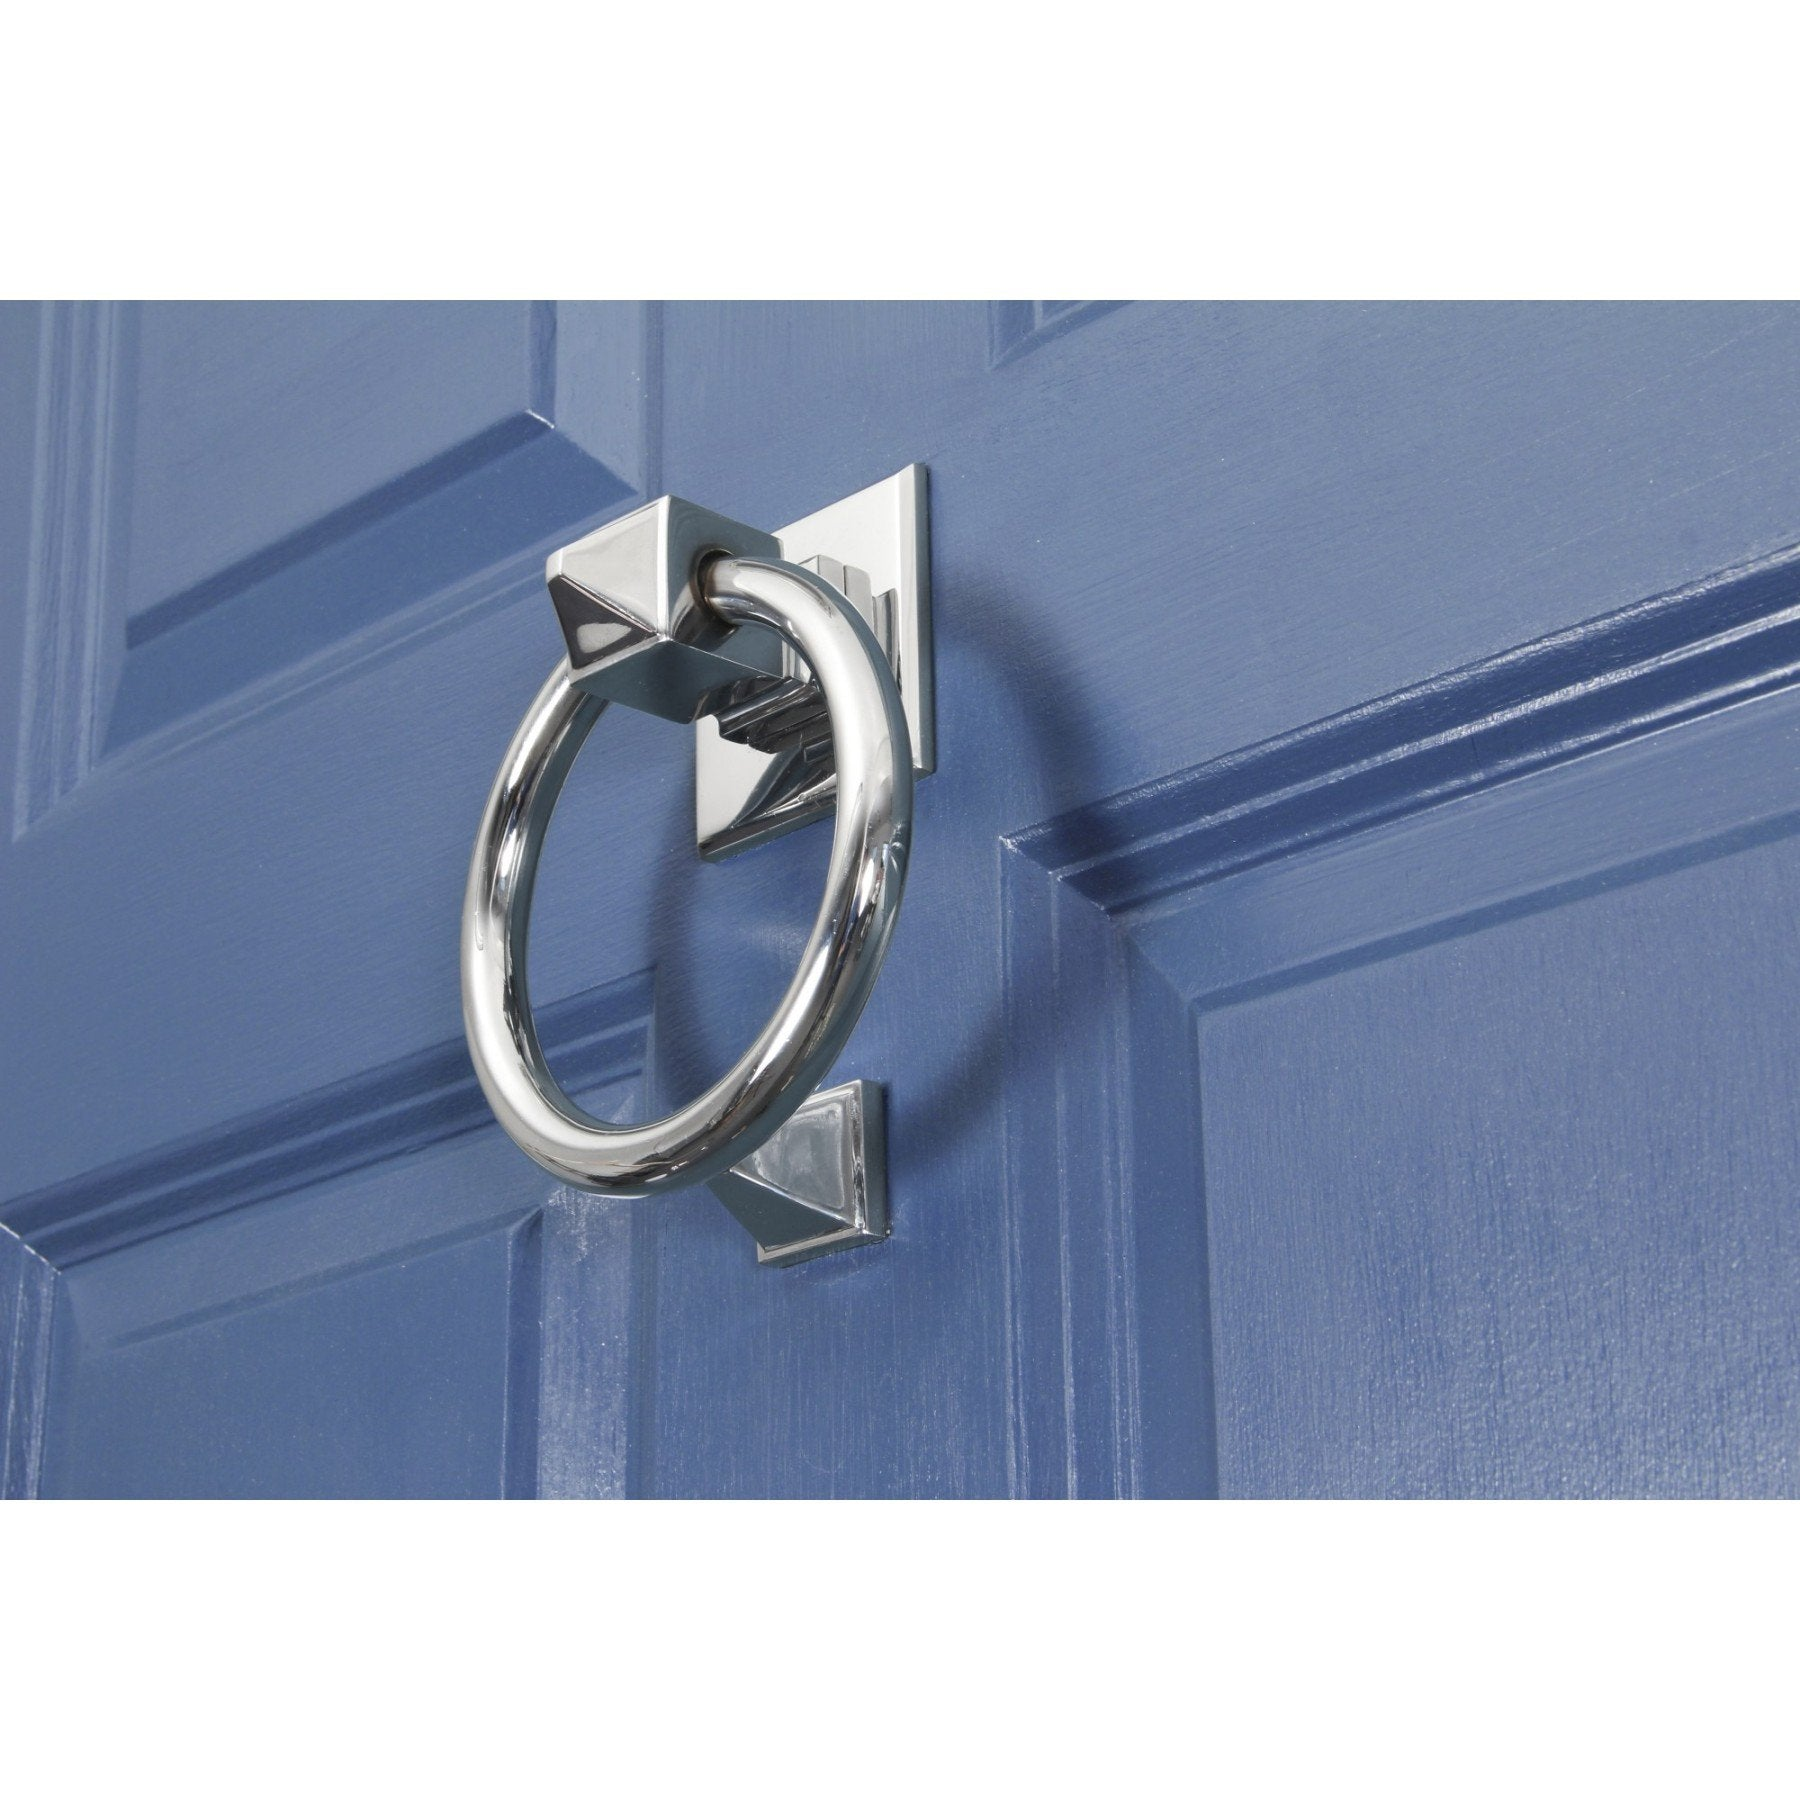 Polished Chrome Ring Door Knocker